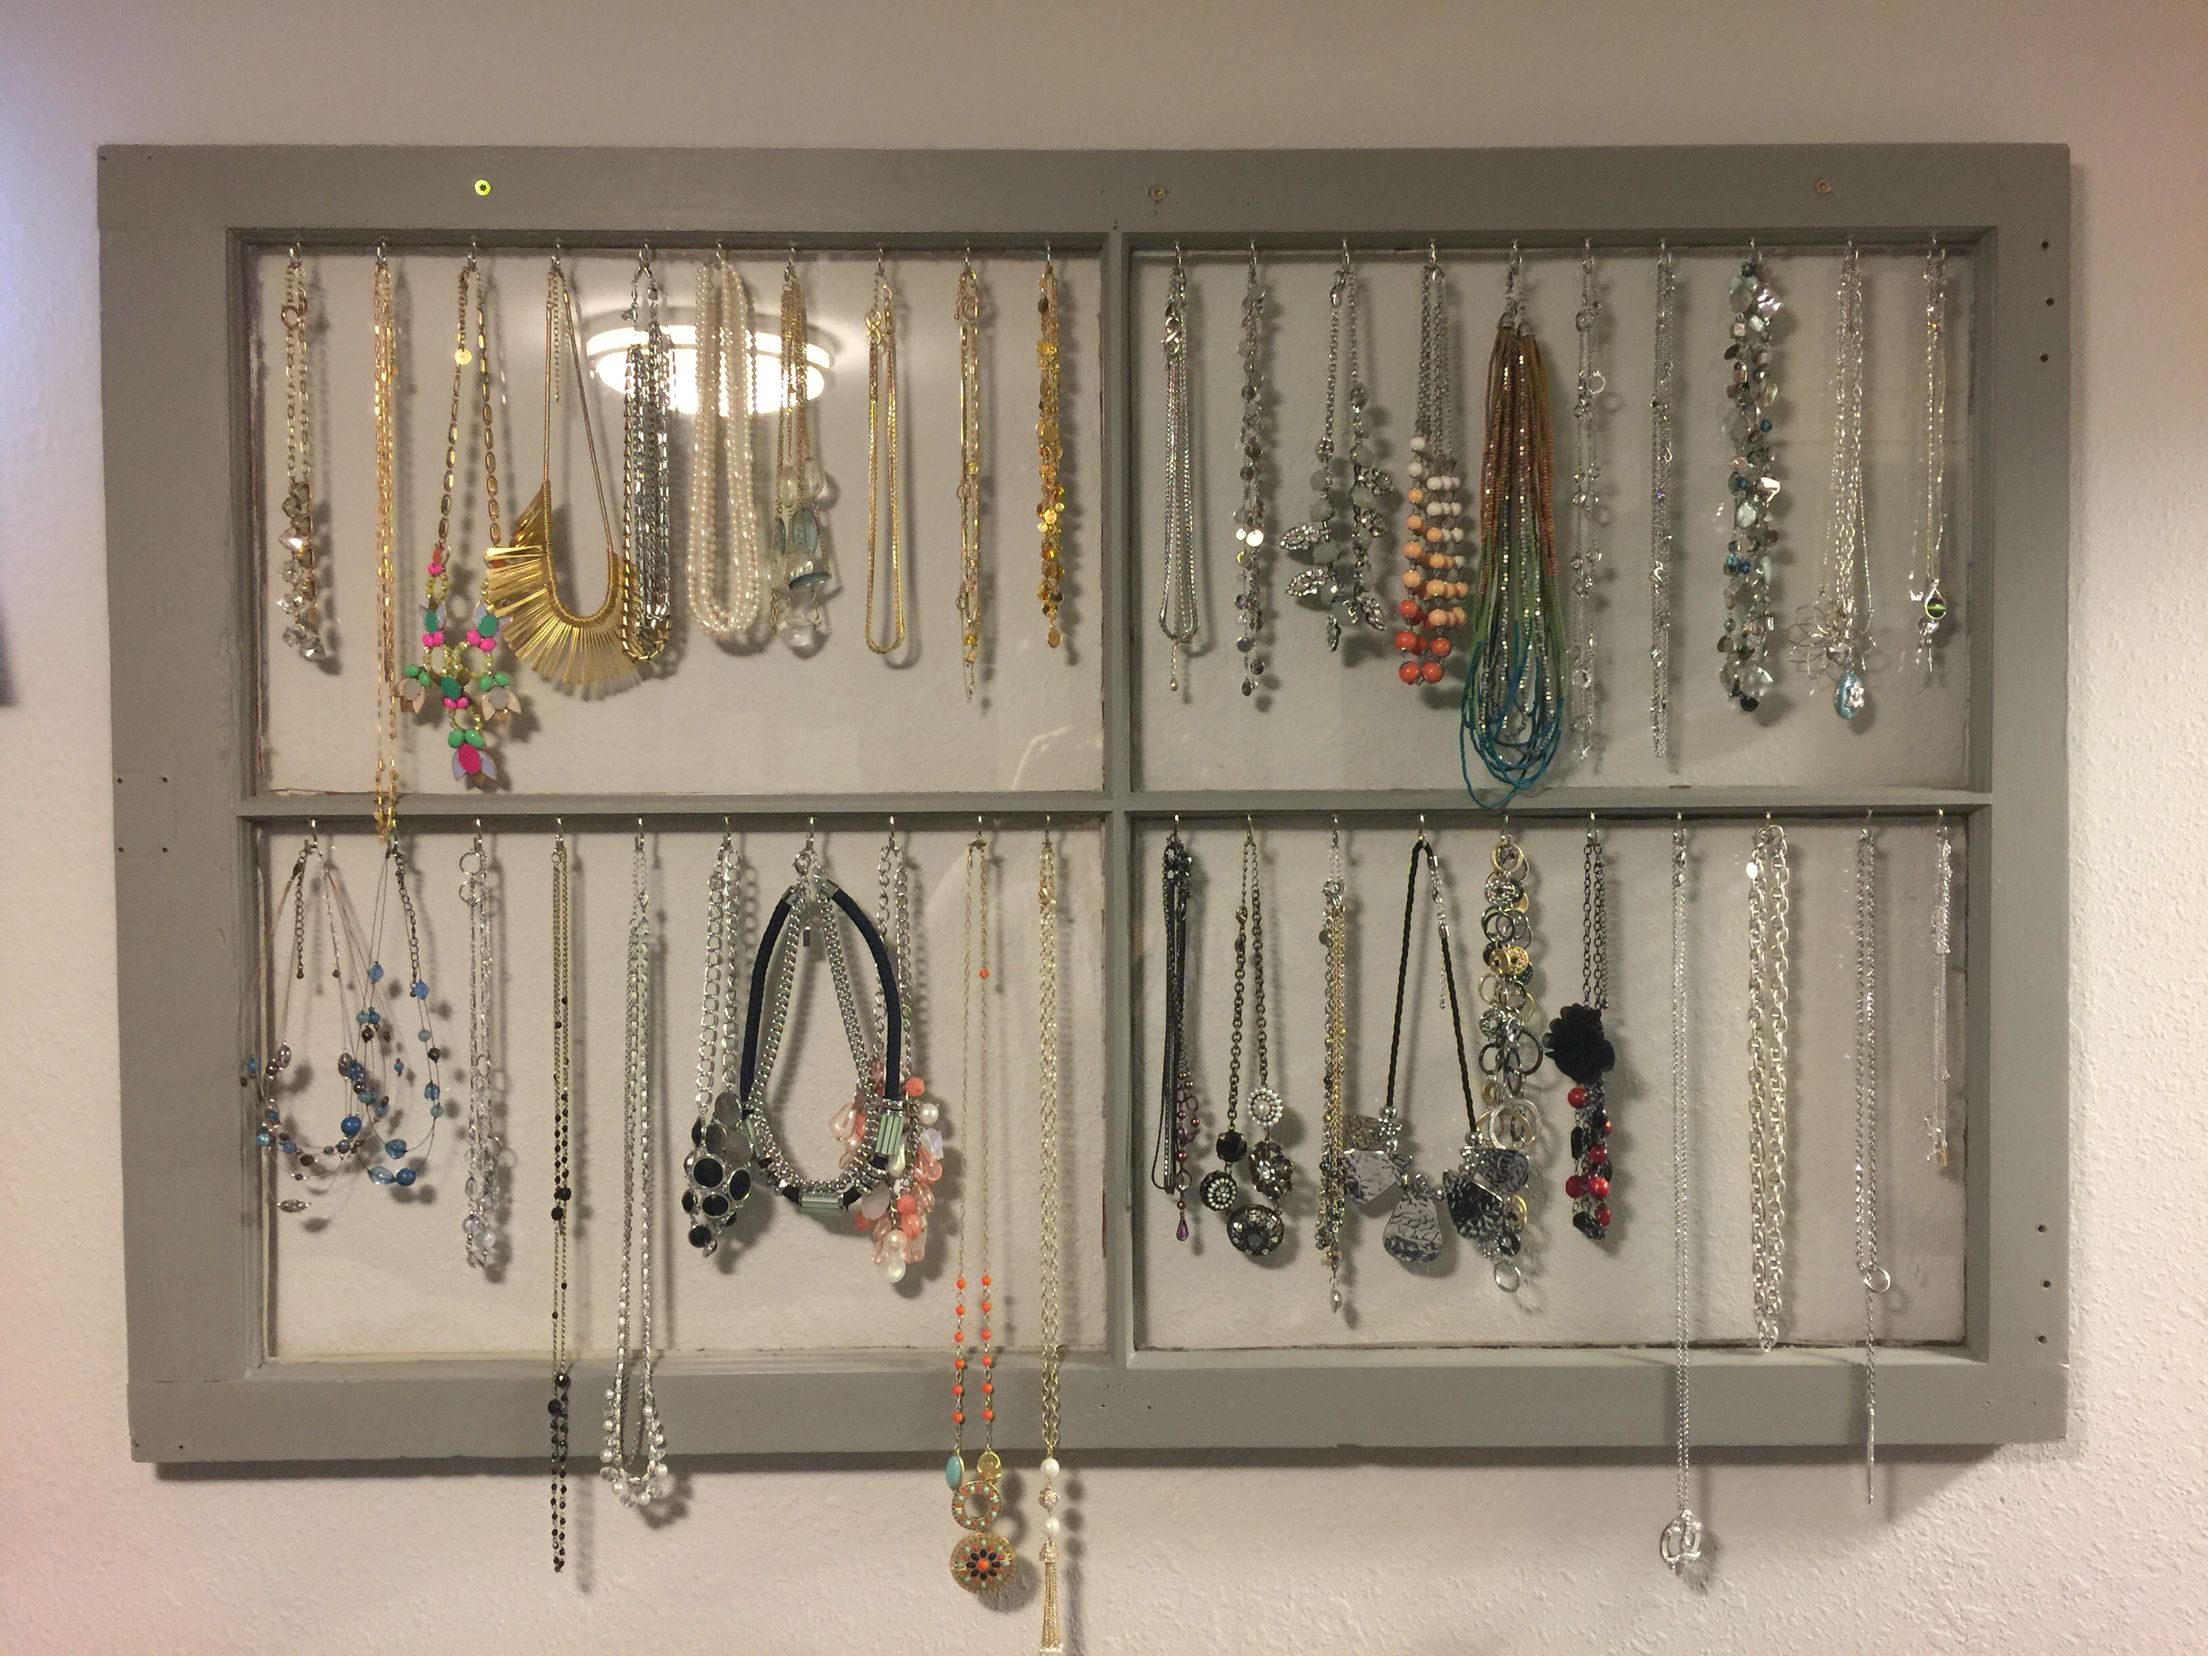 Necklace display/organizer from a $10 window (local re-home store), paint I had from around the house, and 40 cup hooks. Thinking about adding some decorative knobs around the edges for scarves. #diy #necklaceorganizatoon #sopretty #lookslikeadecoration